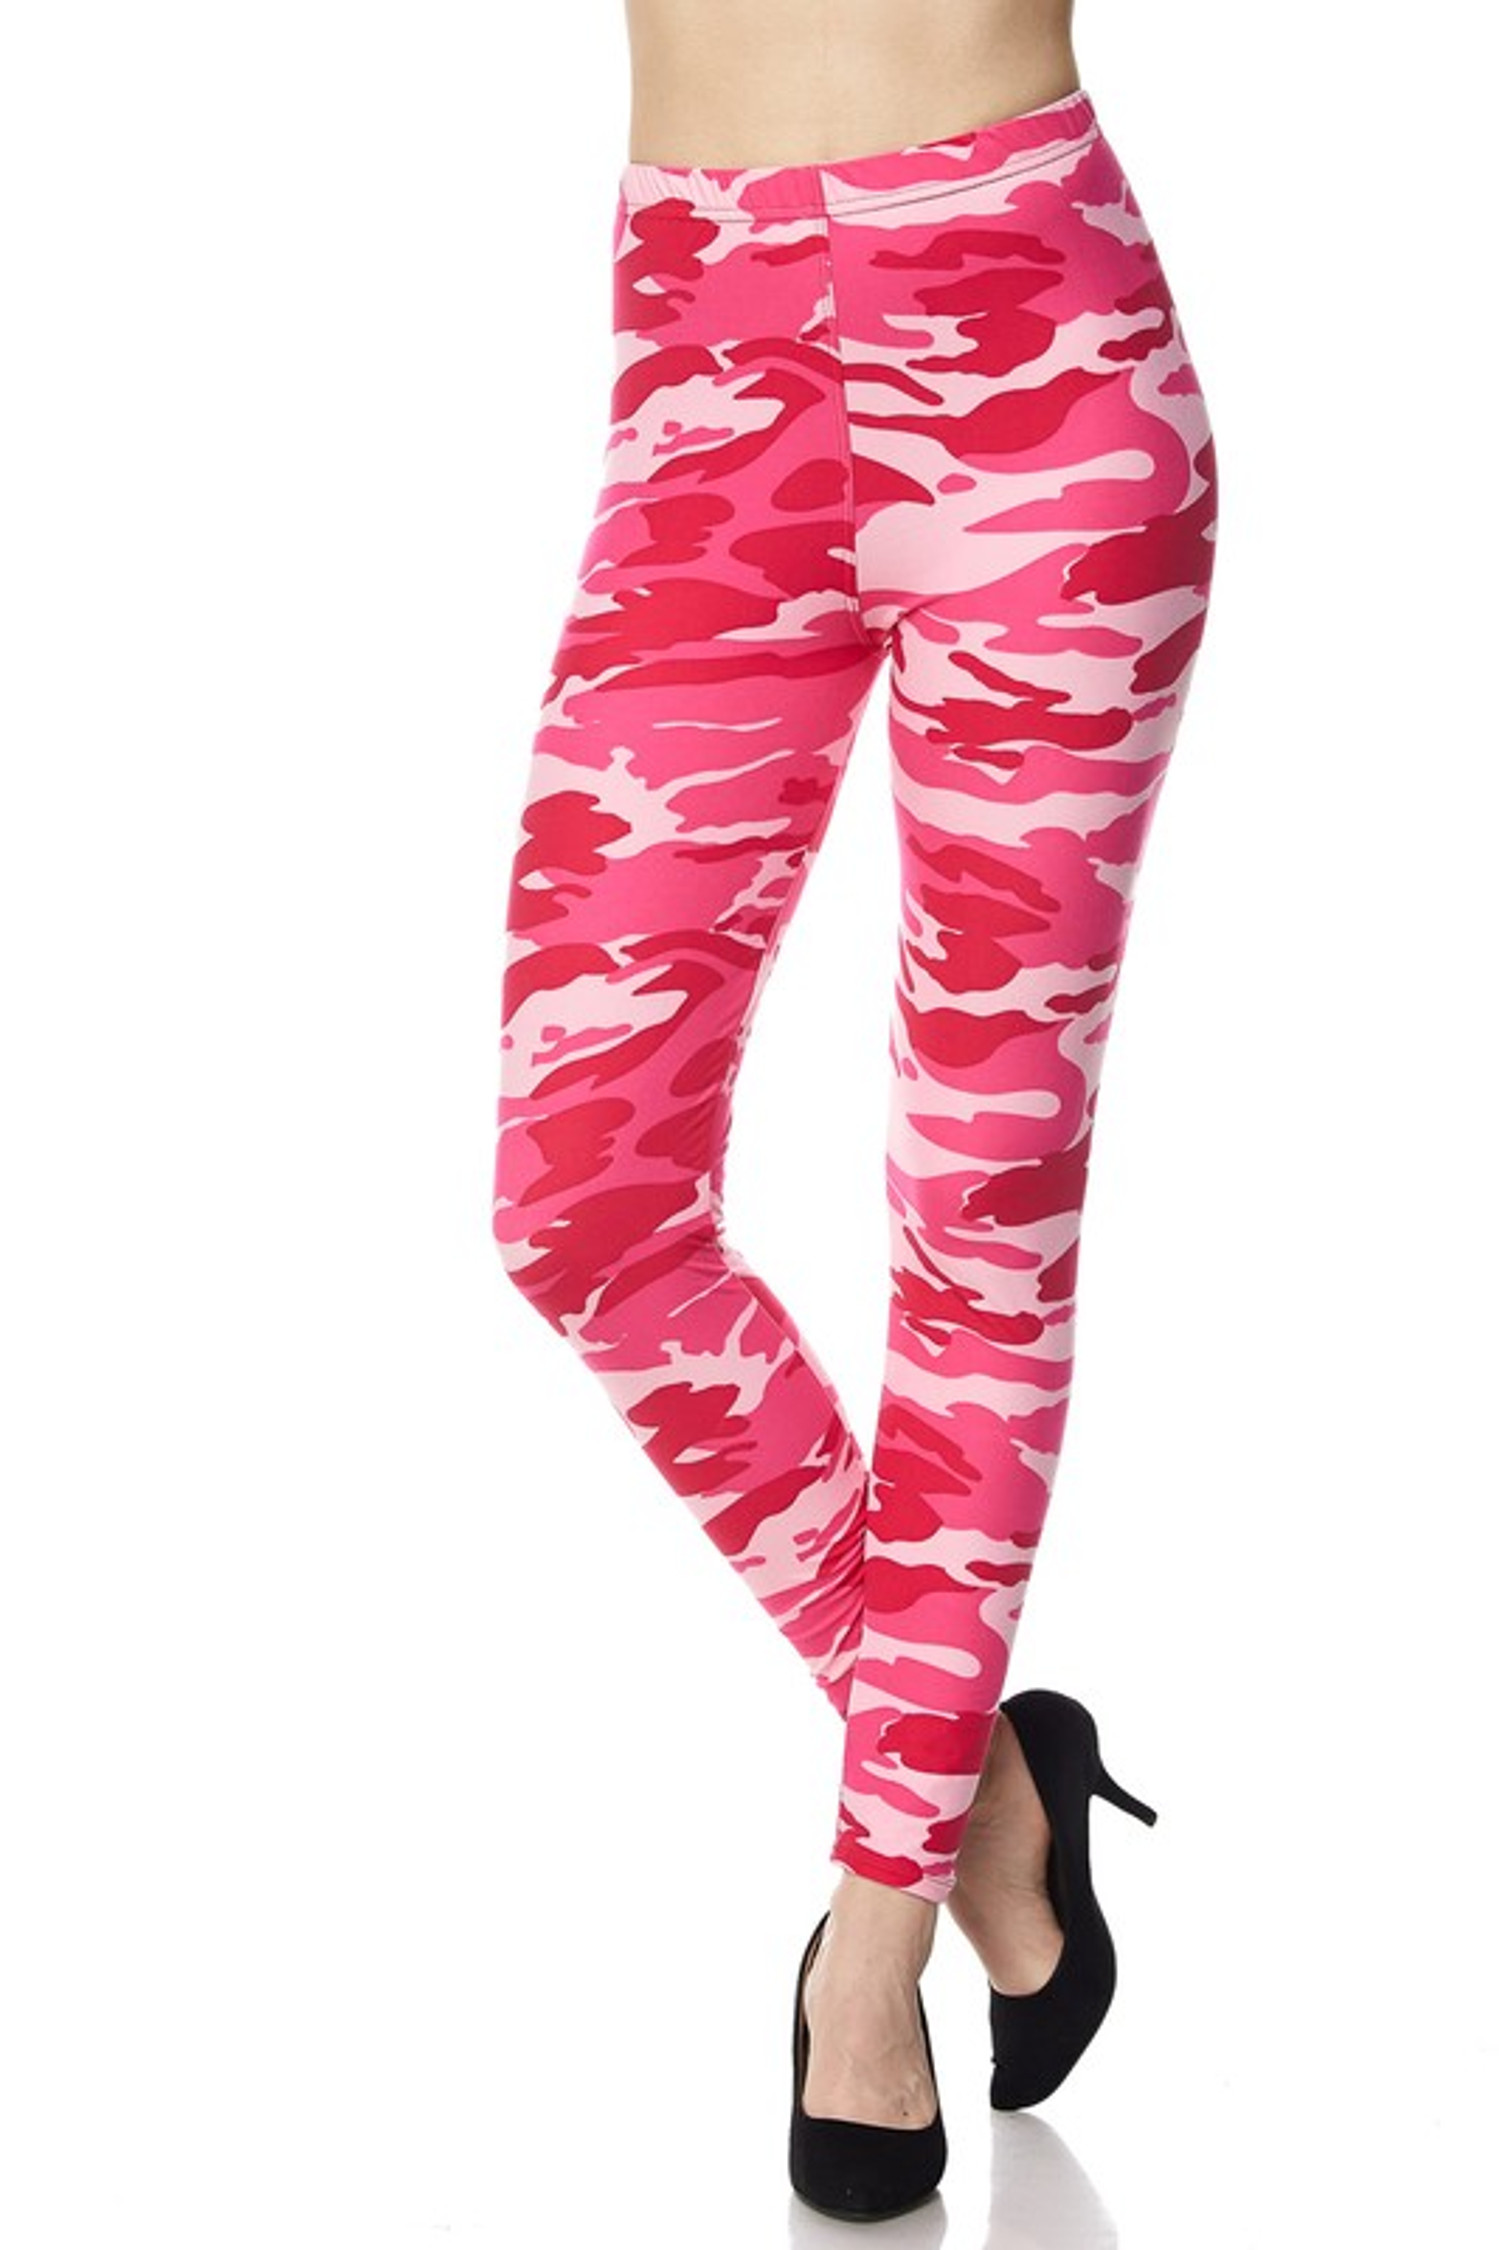 Plus Size Pink Camouflage Leggings